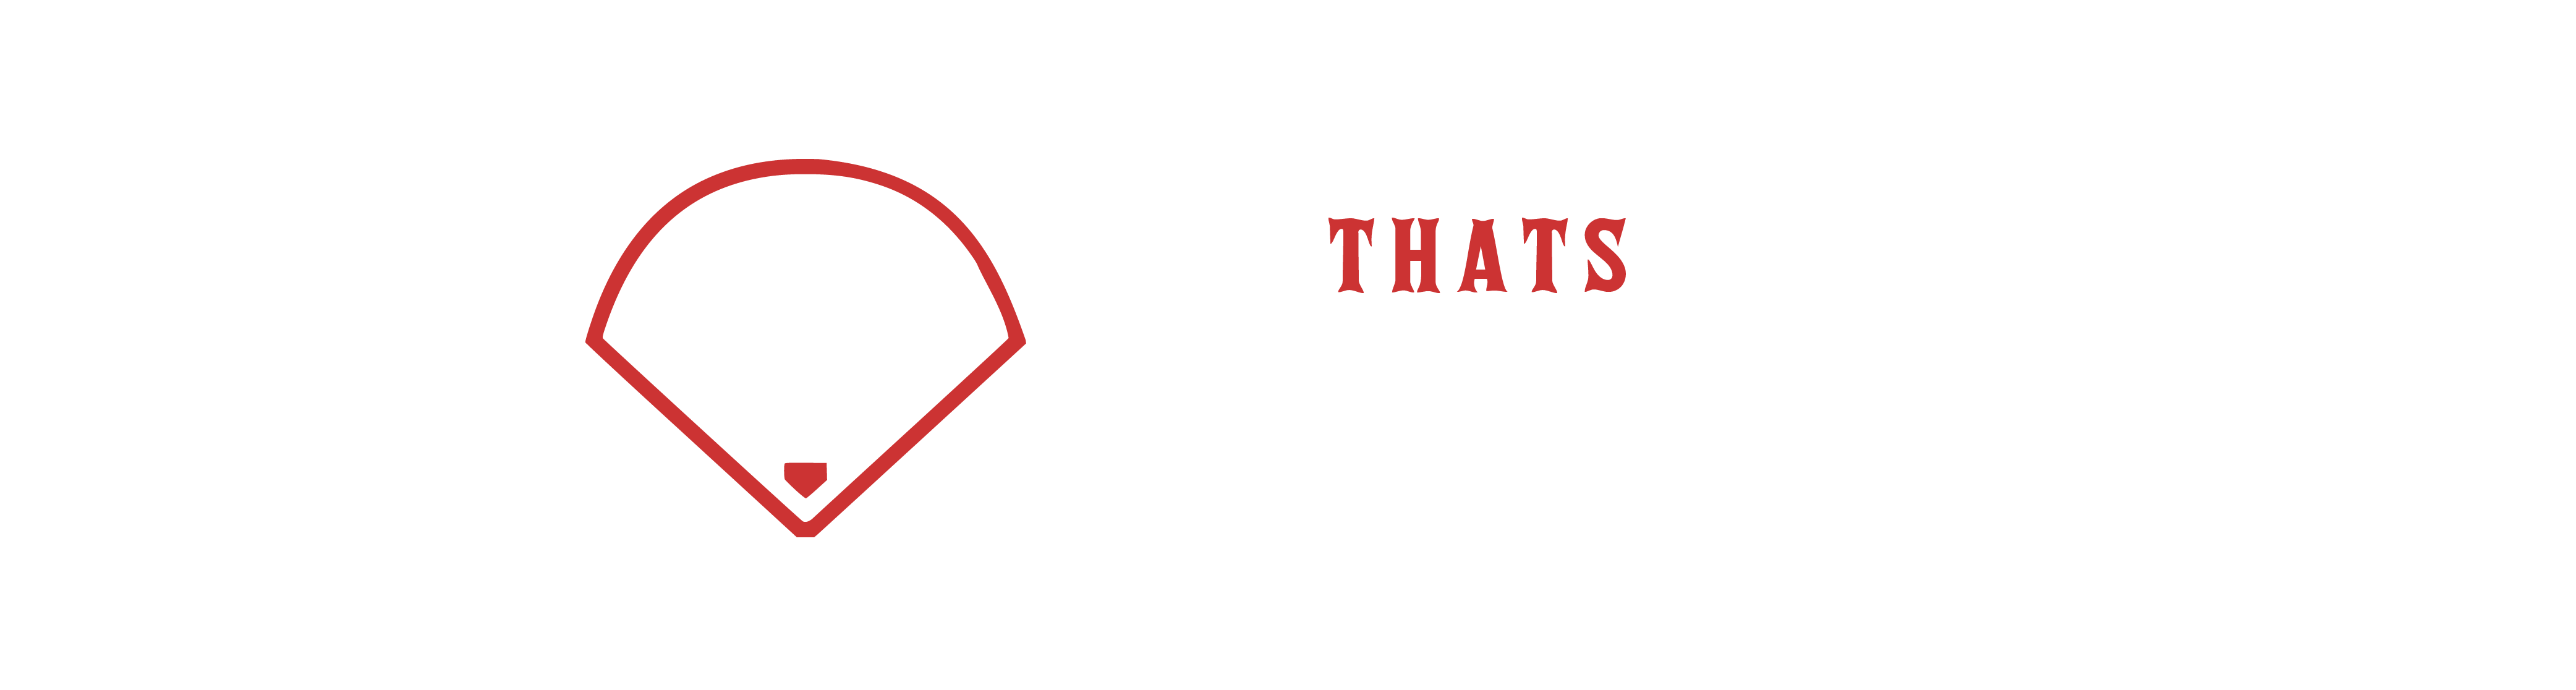 ThatsBaseball.com MLB The Show League